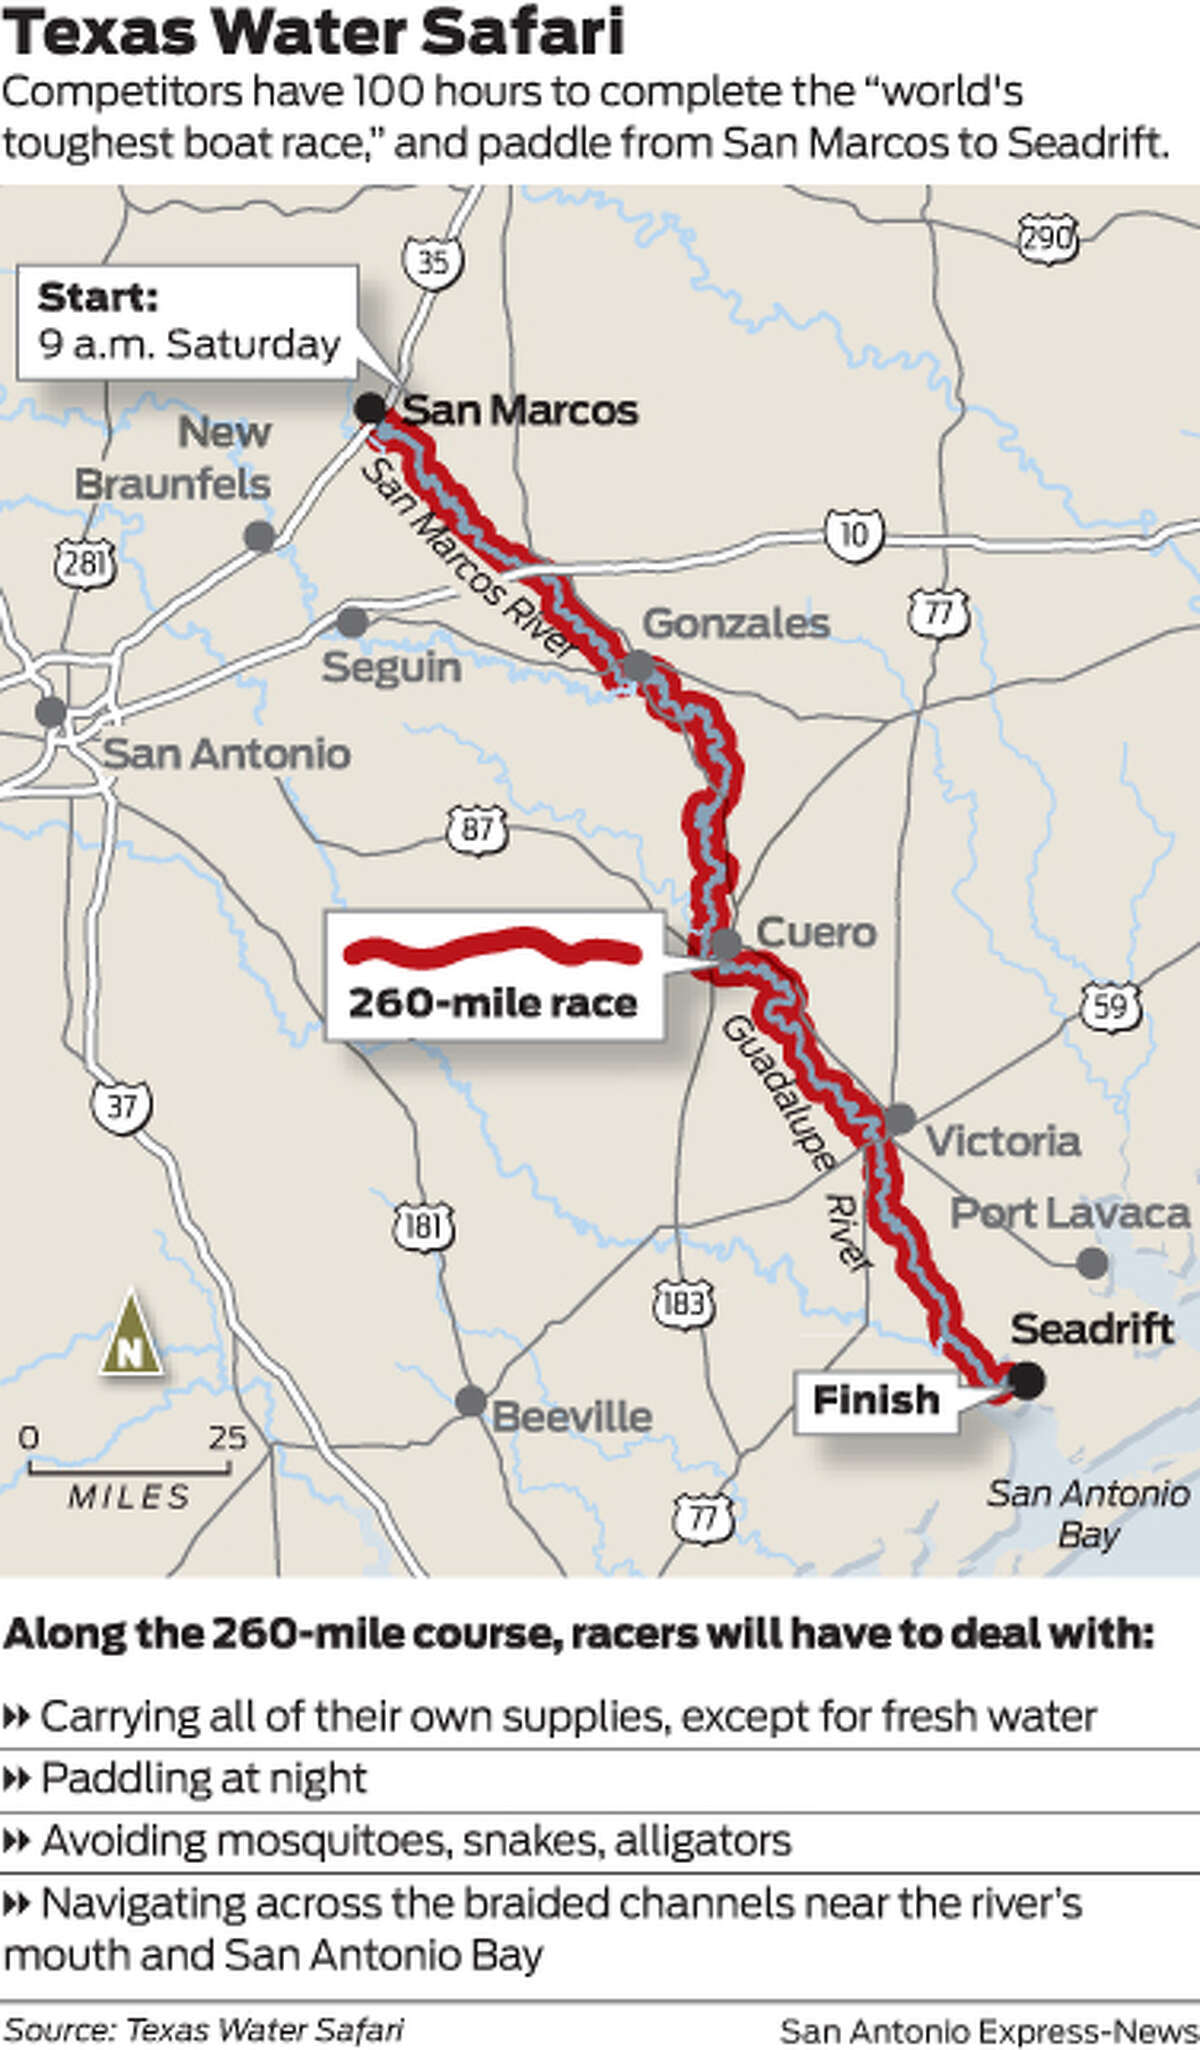 """Competitors have 100 hours to complete the """"world's toughest boat race,"""" and paddle from San Marcos to Seadrift."""